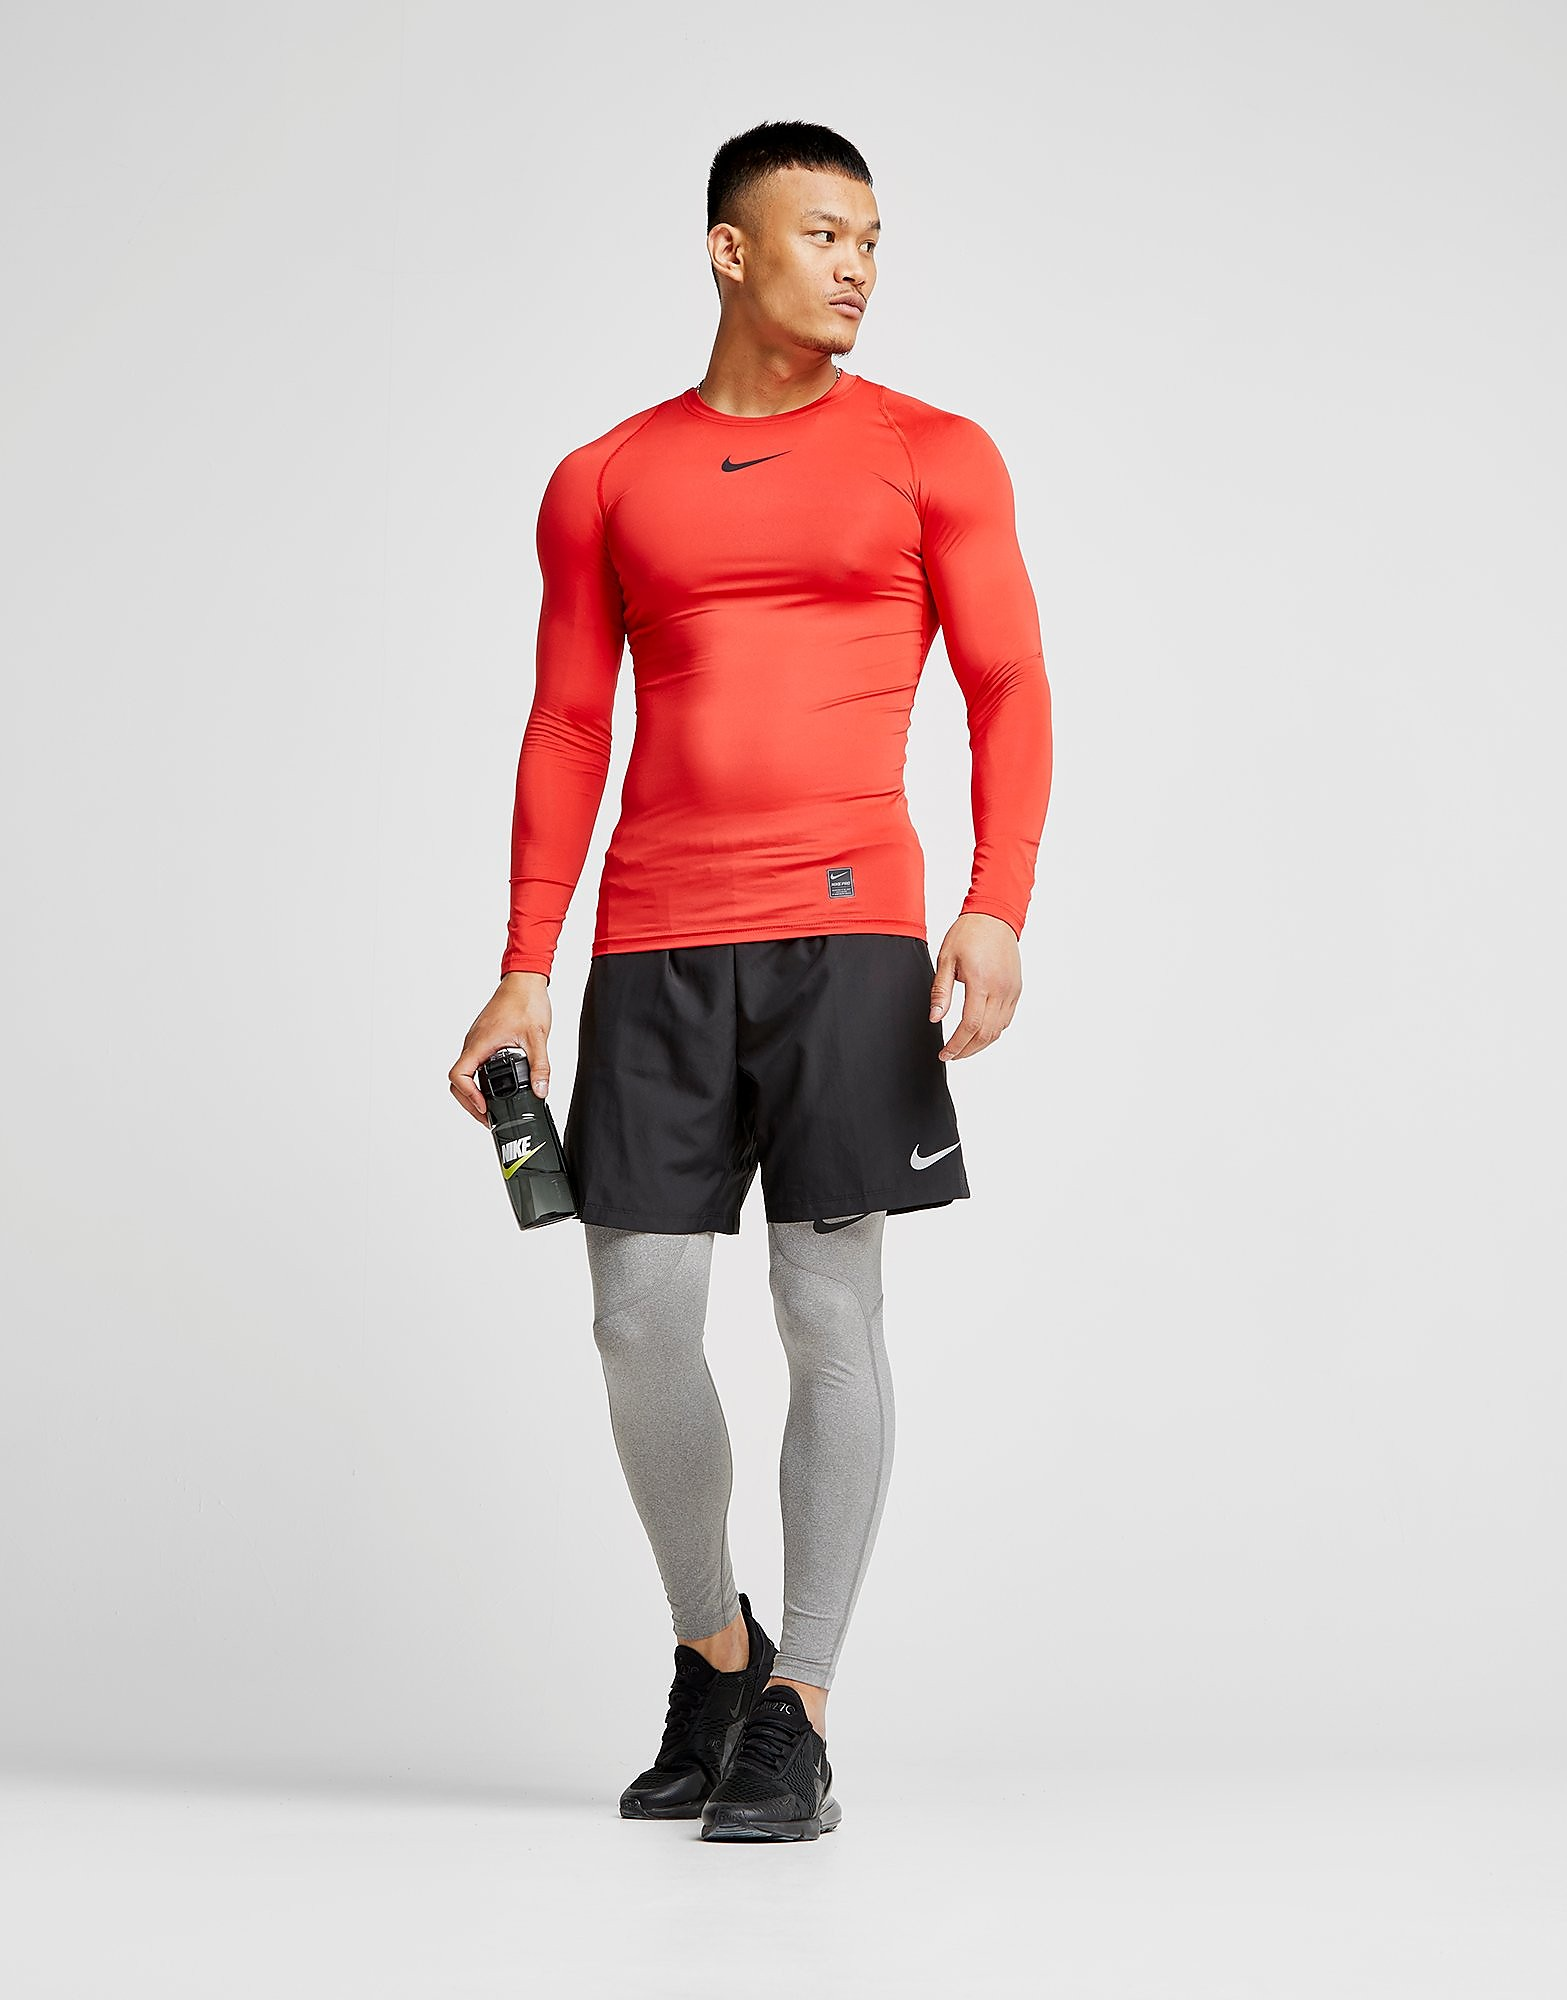 Nike Pro Compression Long Sleeve Top